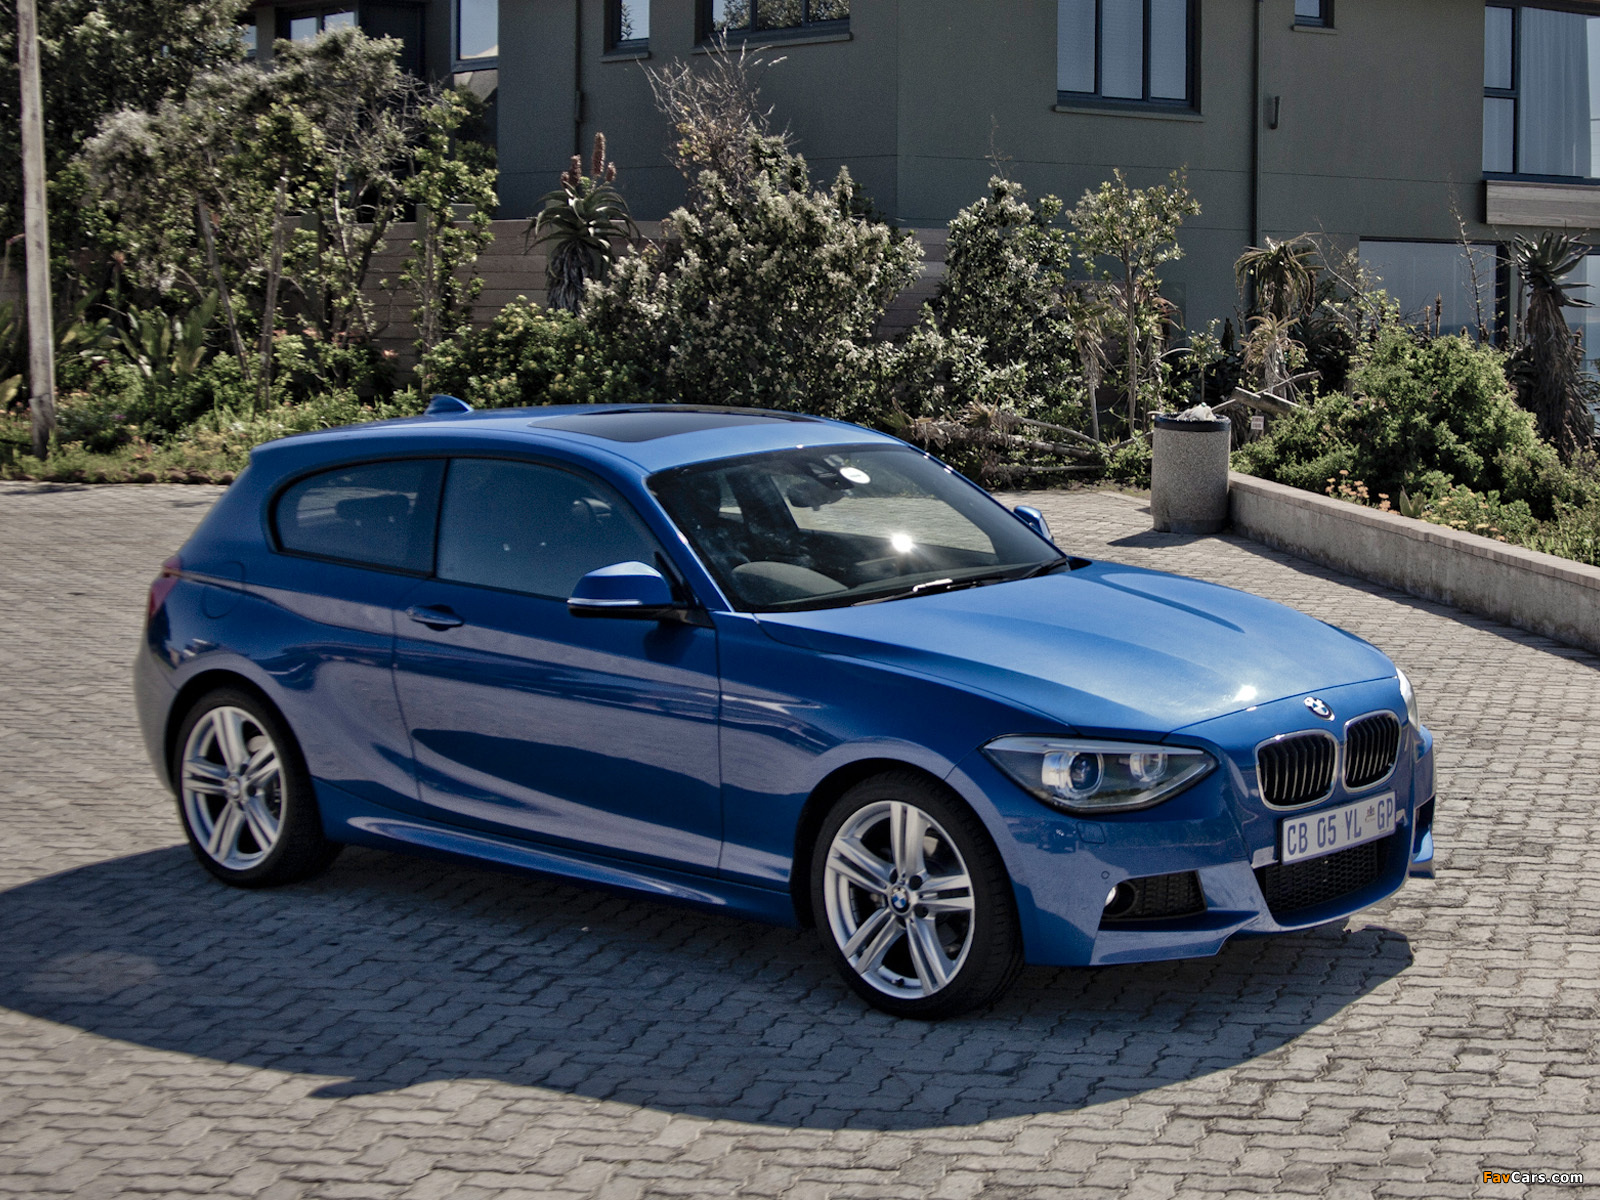 Bmw Sports Car >> BMW 116i 3-door M Sports Package ZA-spec (F21) 2012 pictures (1600x1200)